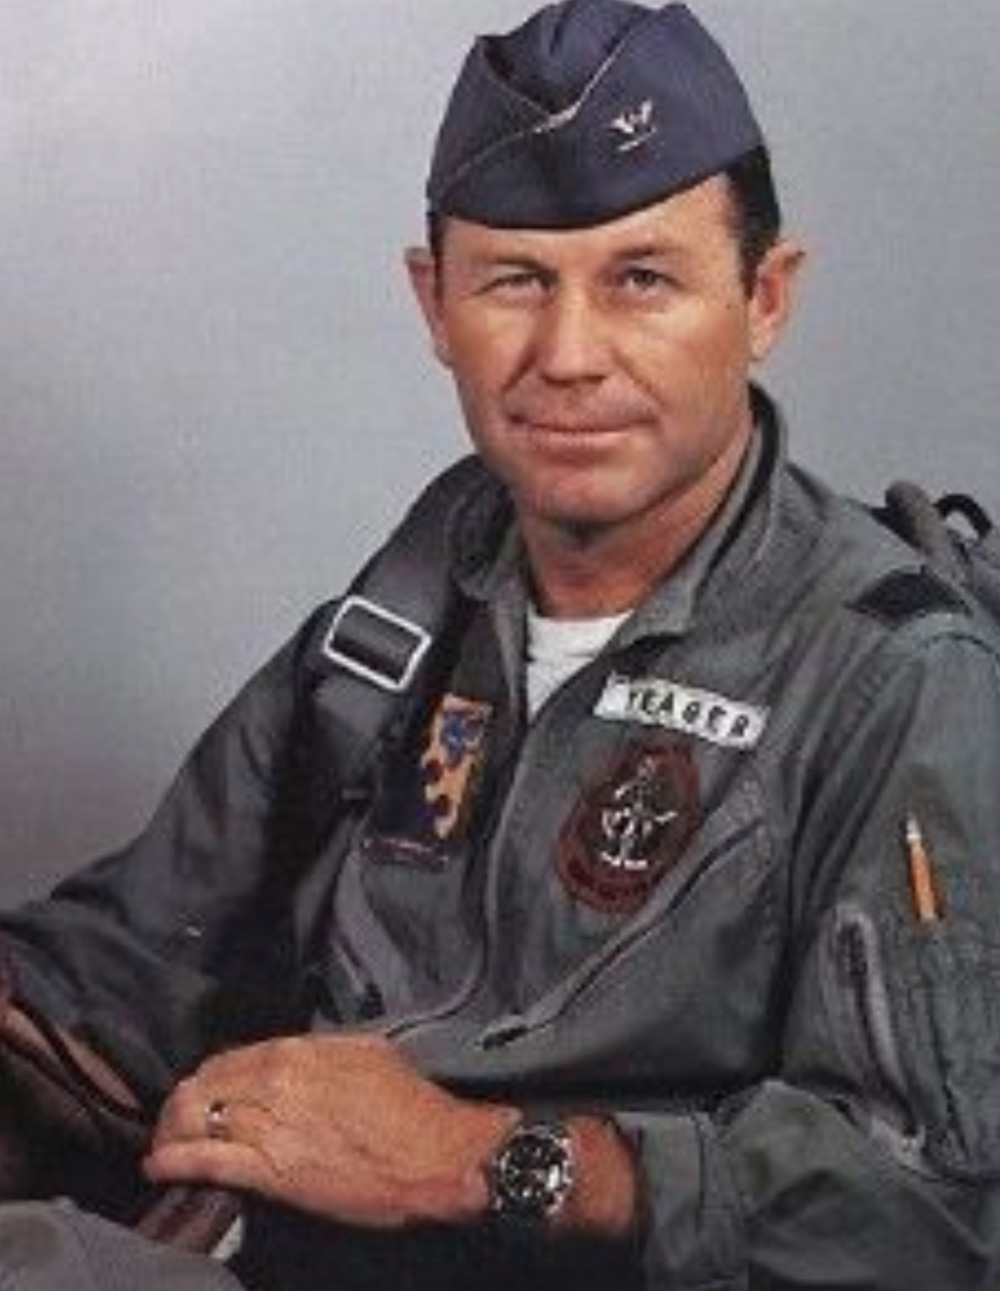 Chuck Yeager was 97 when he died.